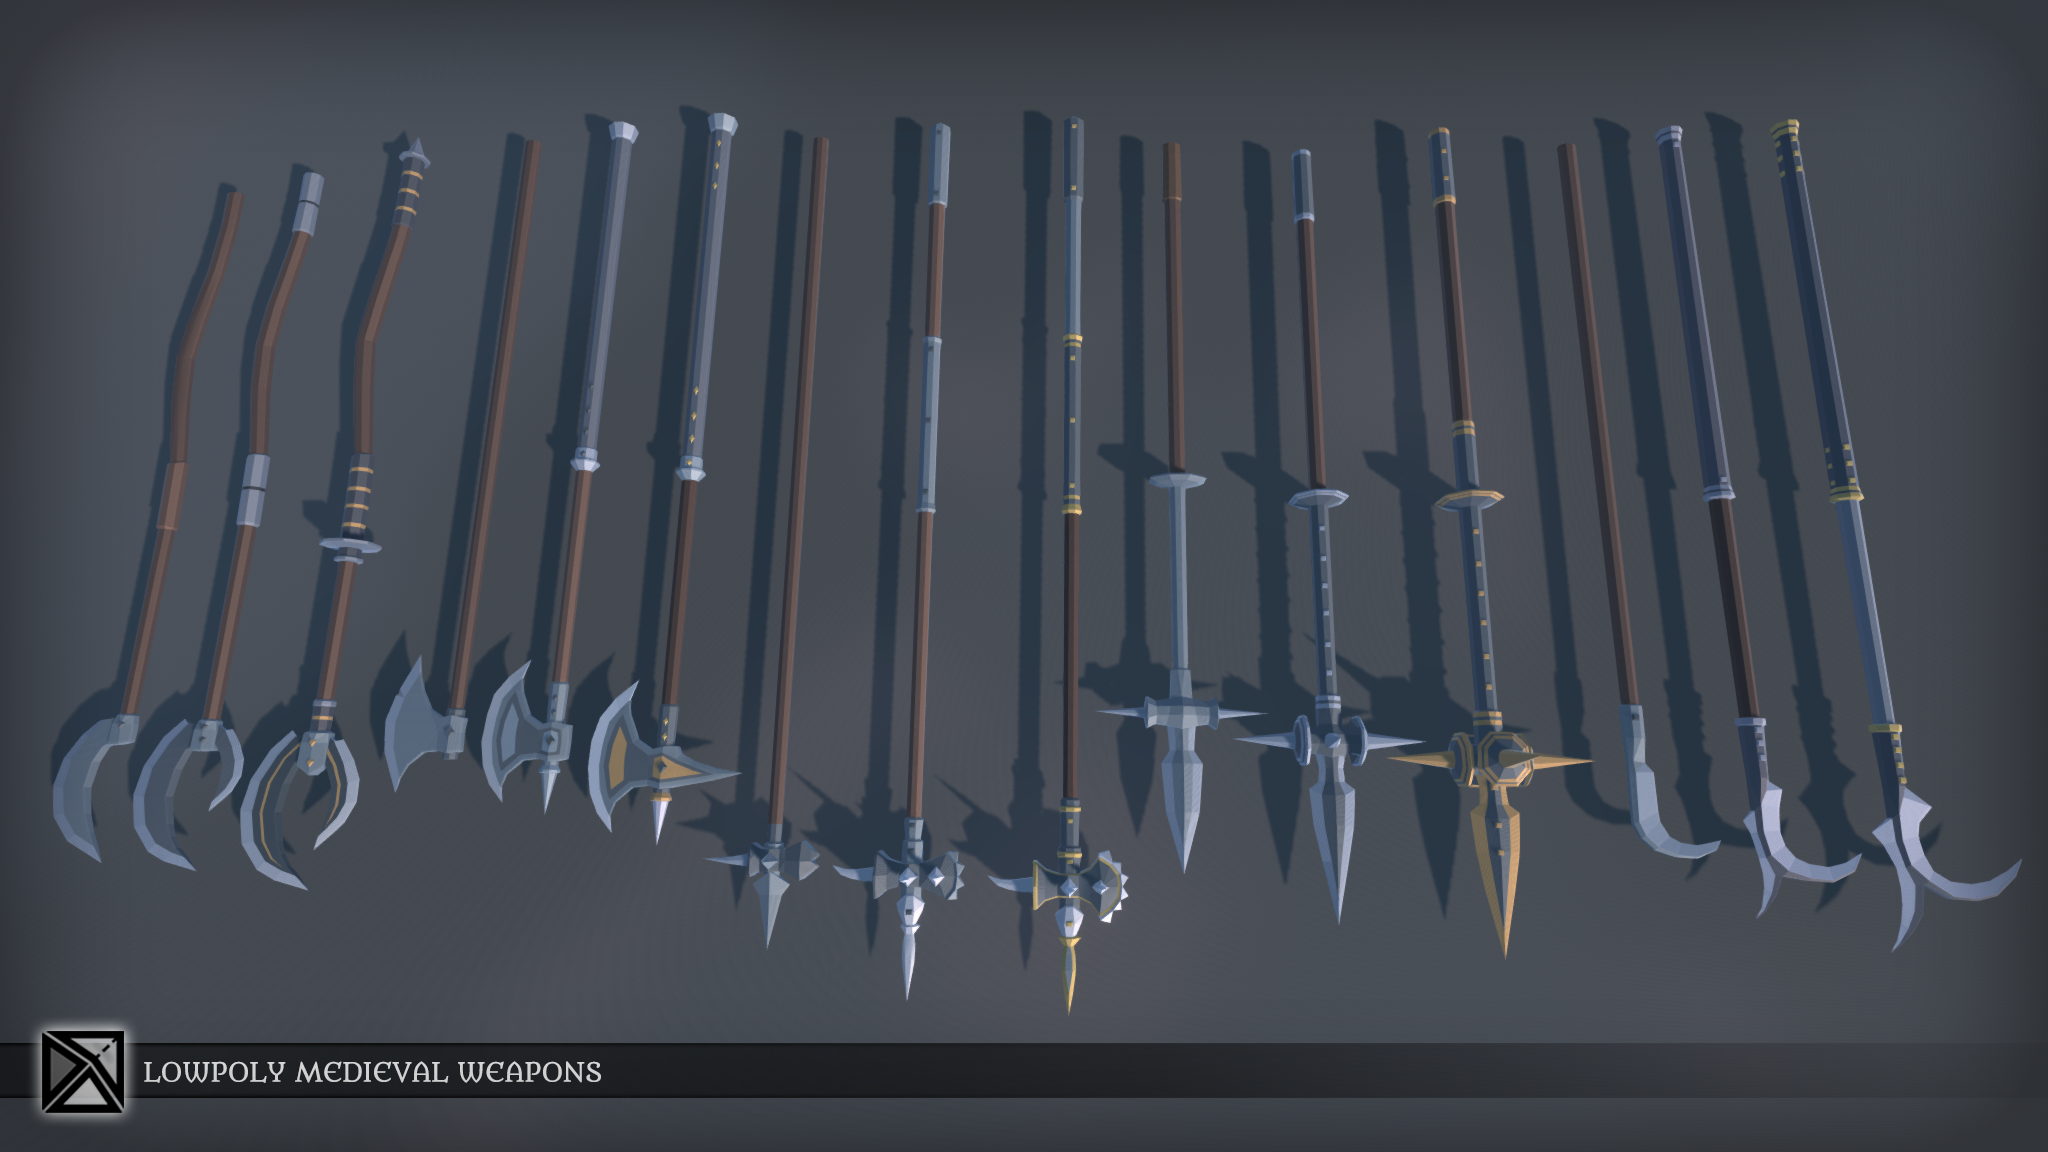 PT_Medieval_Lowpoly_Weapons_Warhammer_Pike.png